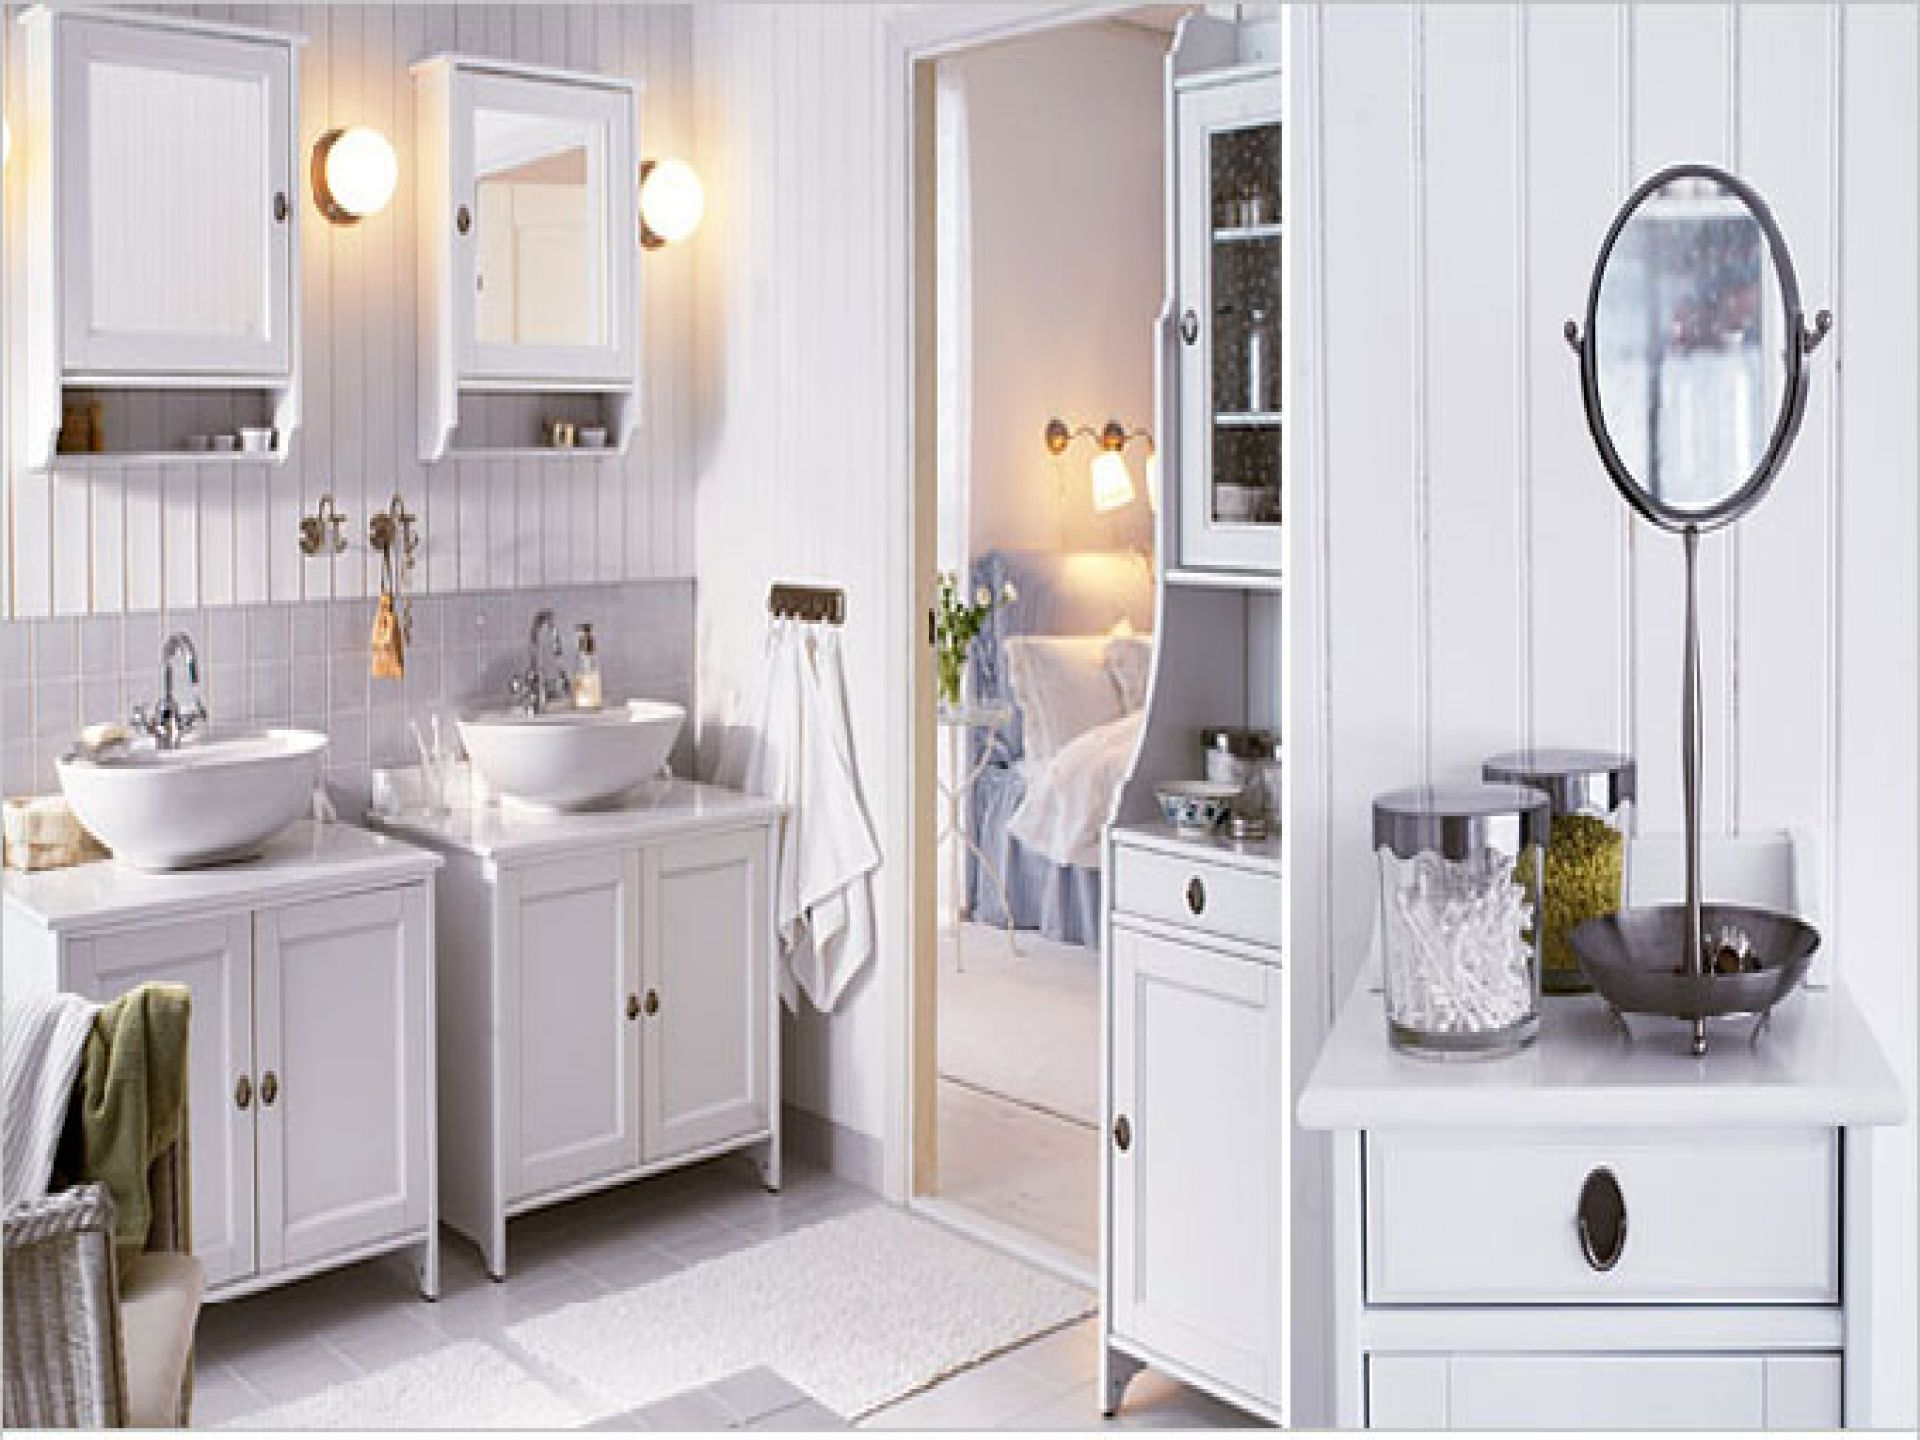 Bathroom Design Ikea Endearing Drawing Of Ikea Bath Cabinet Invades Every Bathroom With Dignity Design Decoration